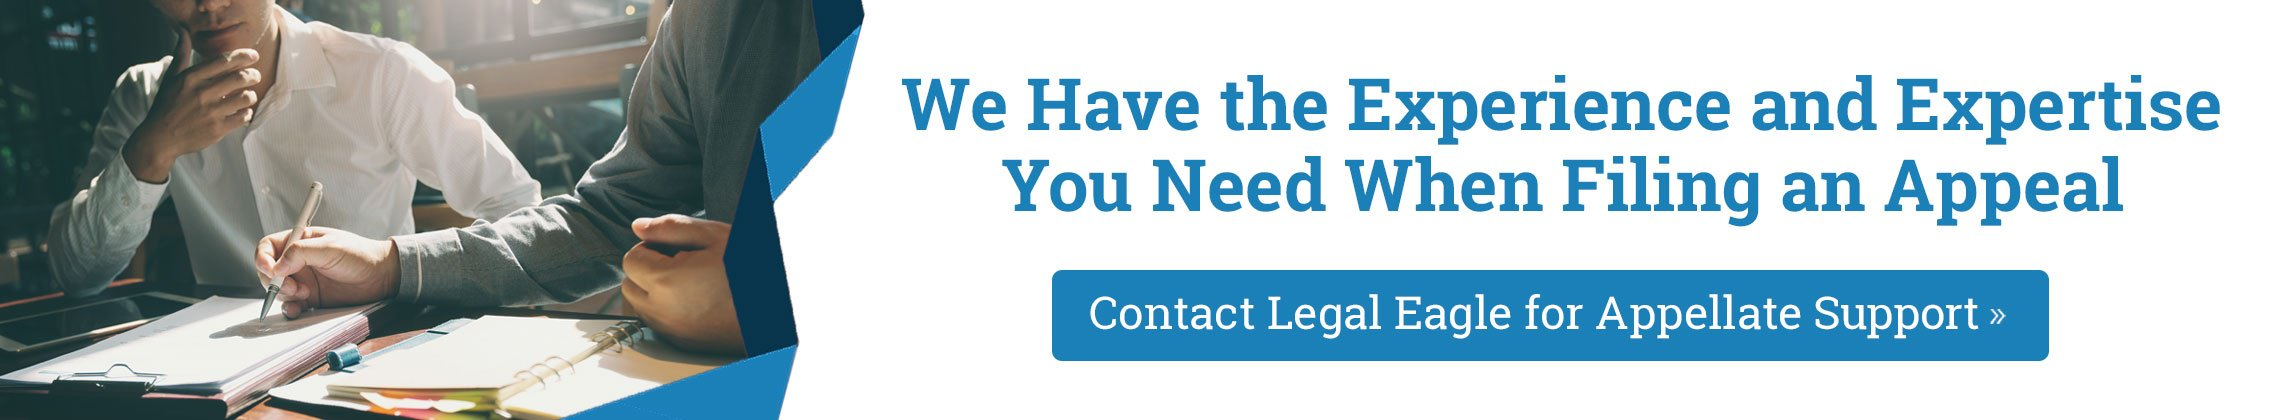 Contact Legal Eagle for Appellate Support